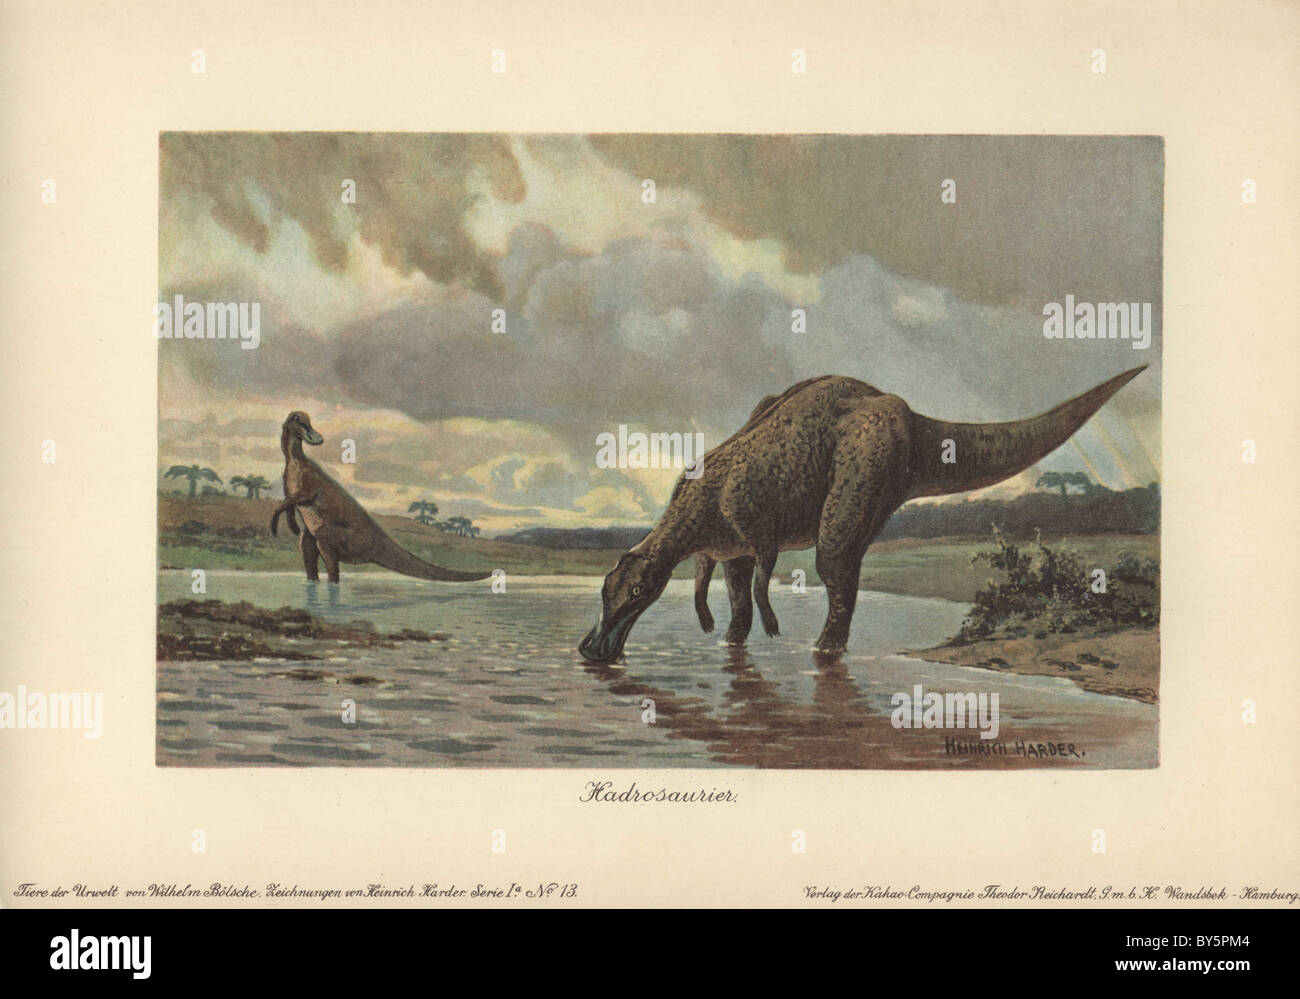 Hadrosaurs or duck-billed dinosaurs of the family Hadrosauridae were herbivorous dinosaurs of the Upper Cretaceous - Stock Image